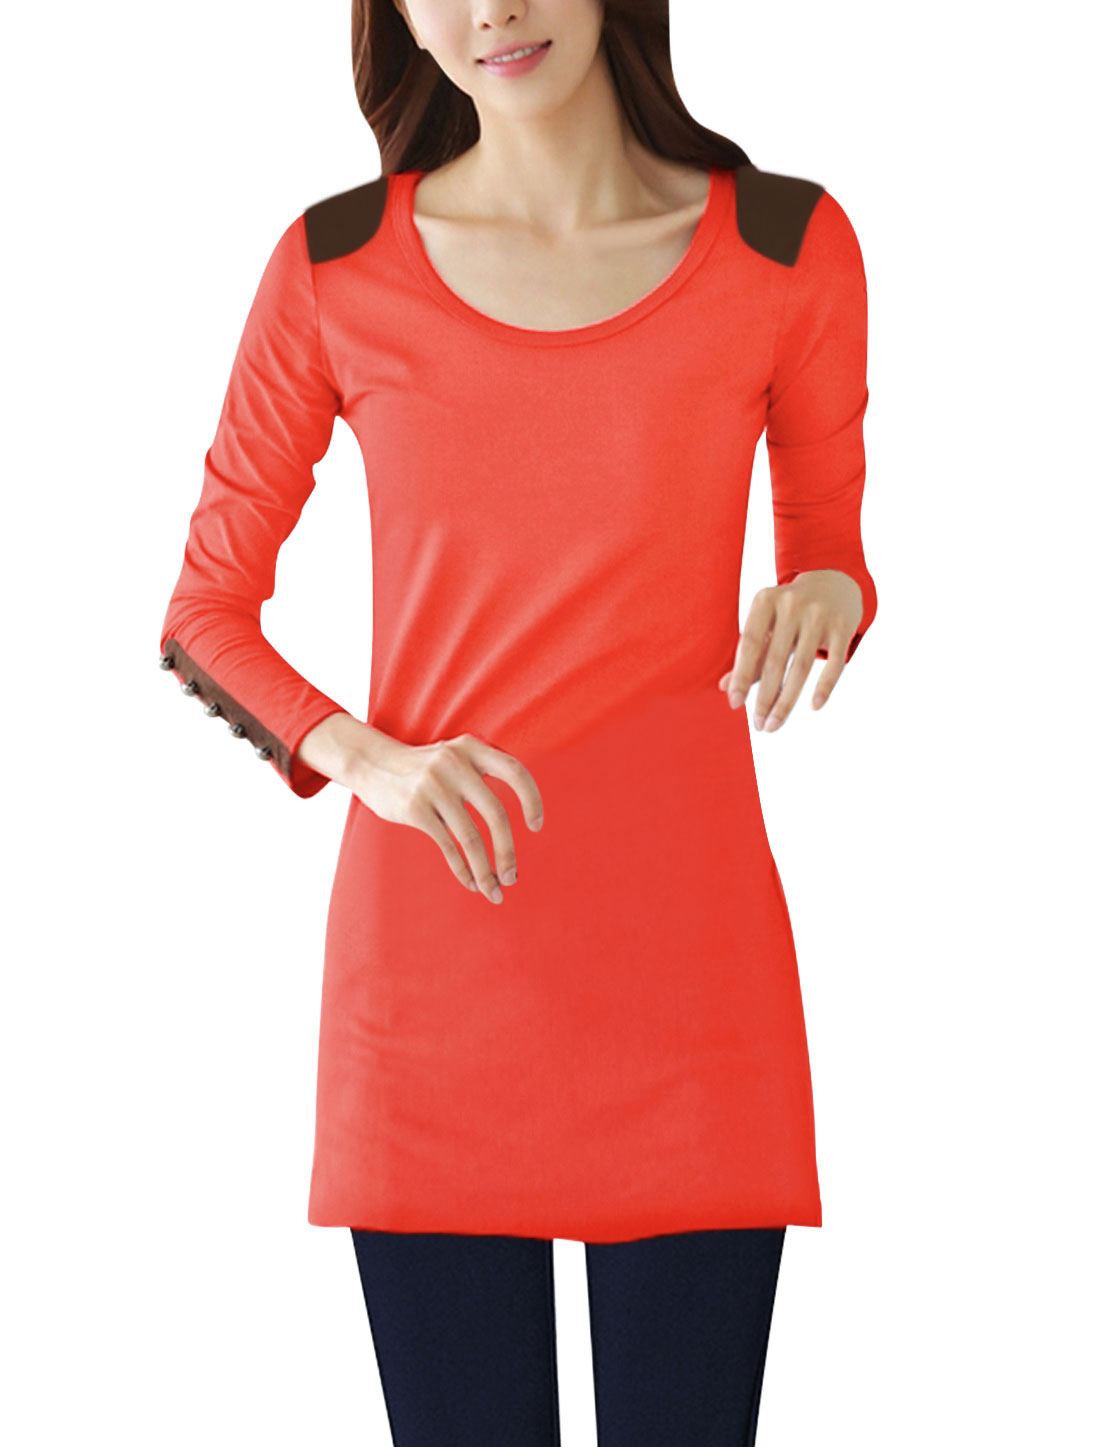 Ladies Button Decor Cuffs Long Sleeves Coral Tunic Shirt S